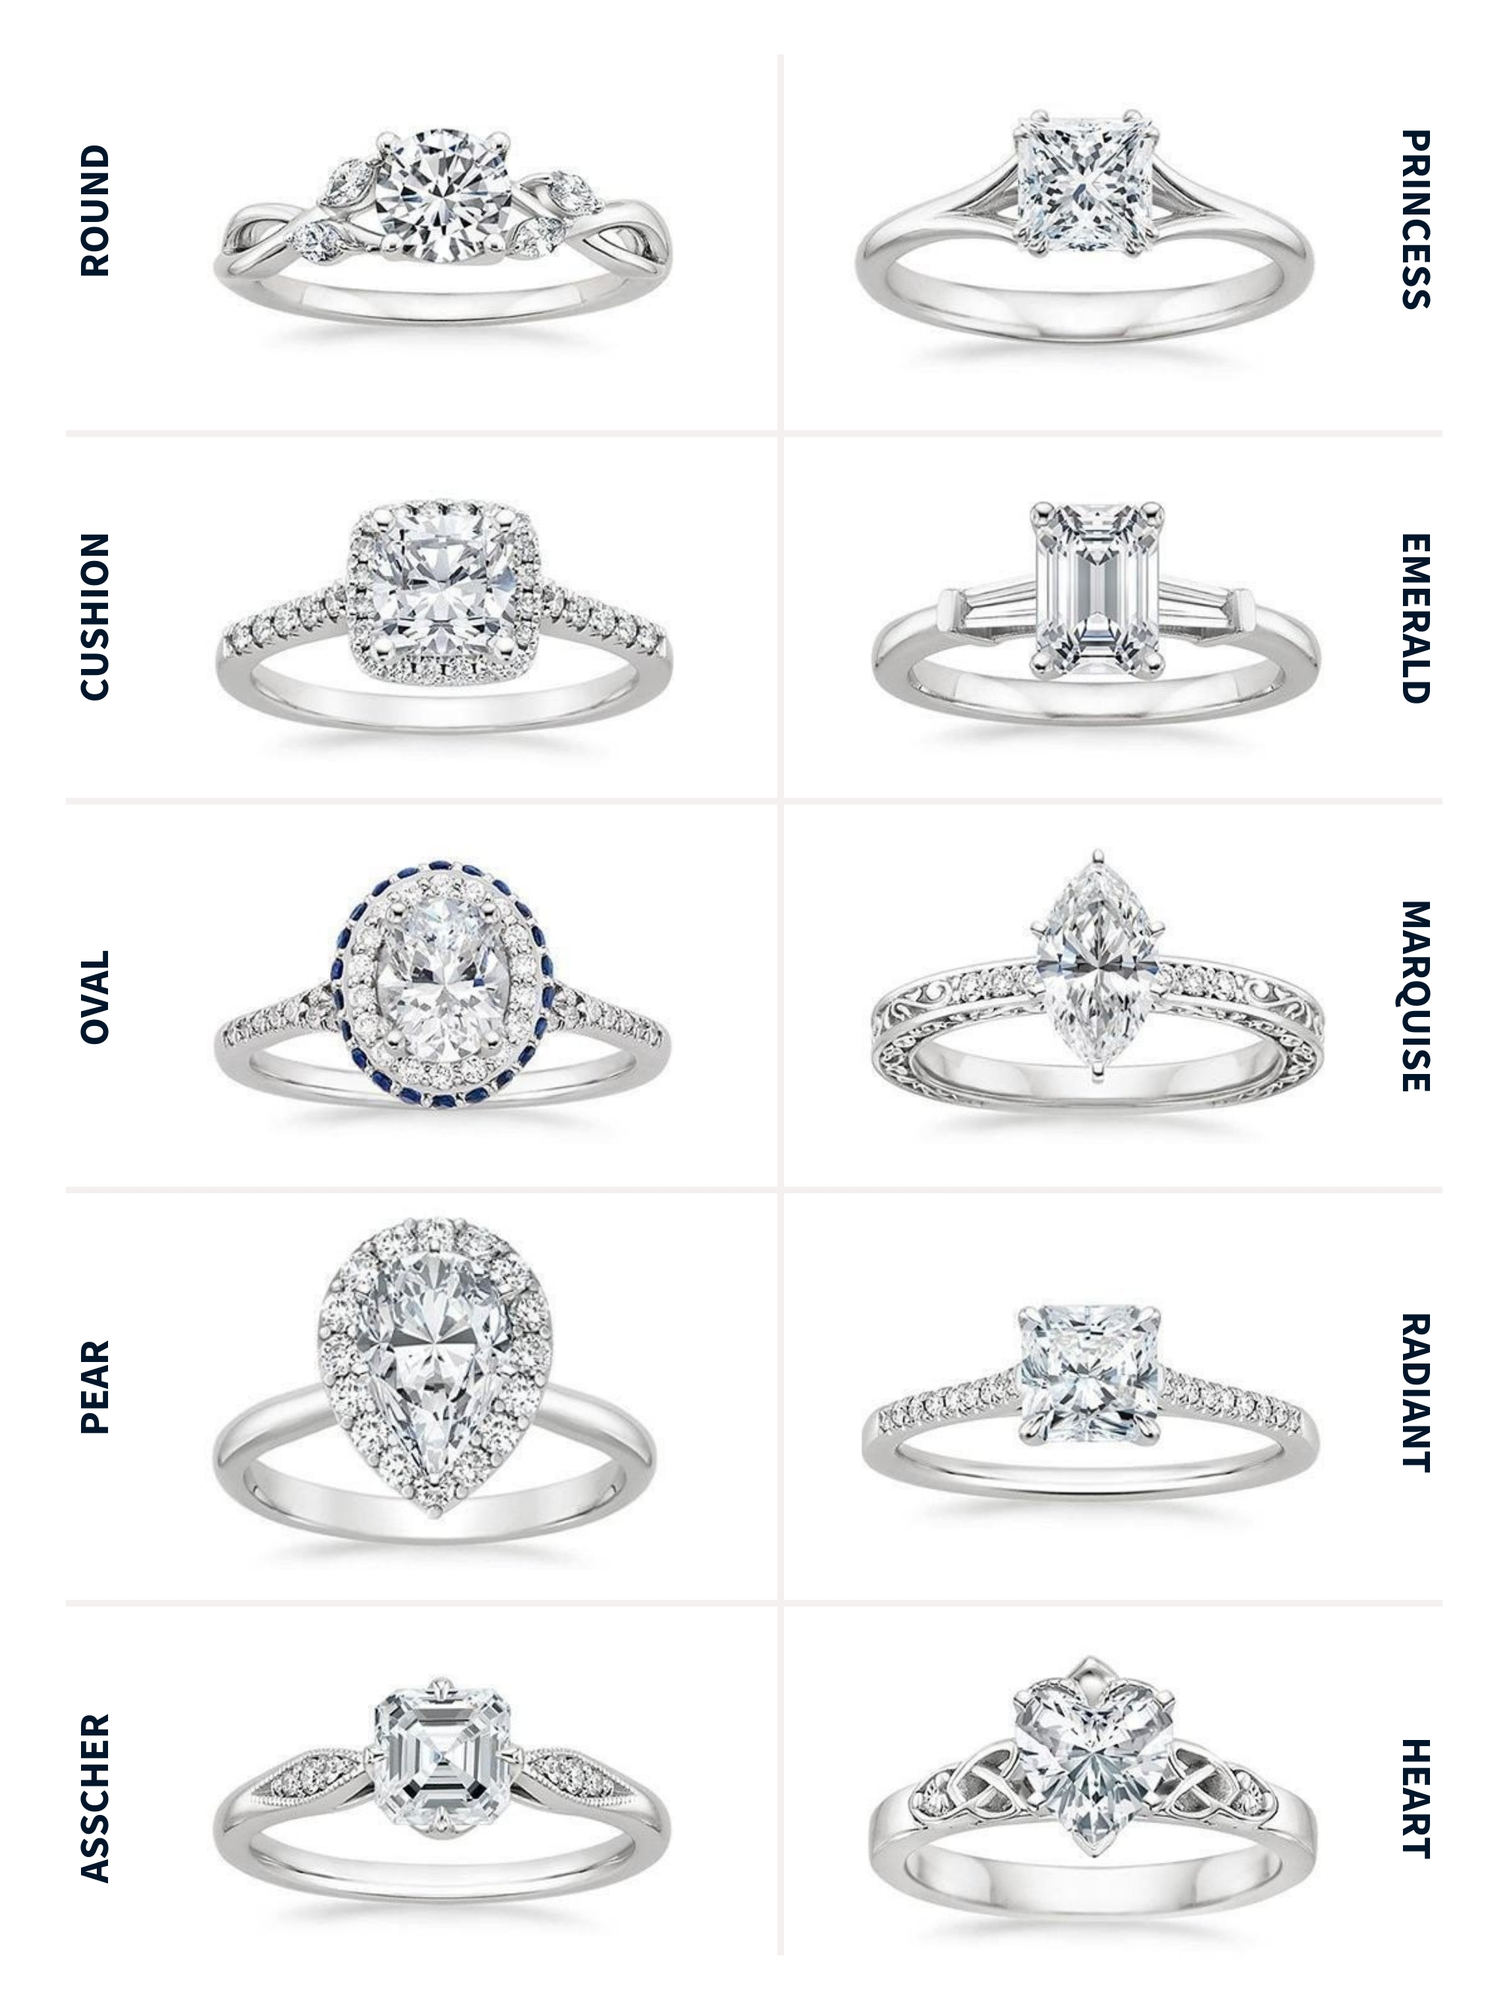 Diamond ring cuts